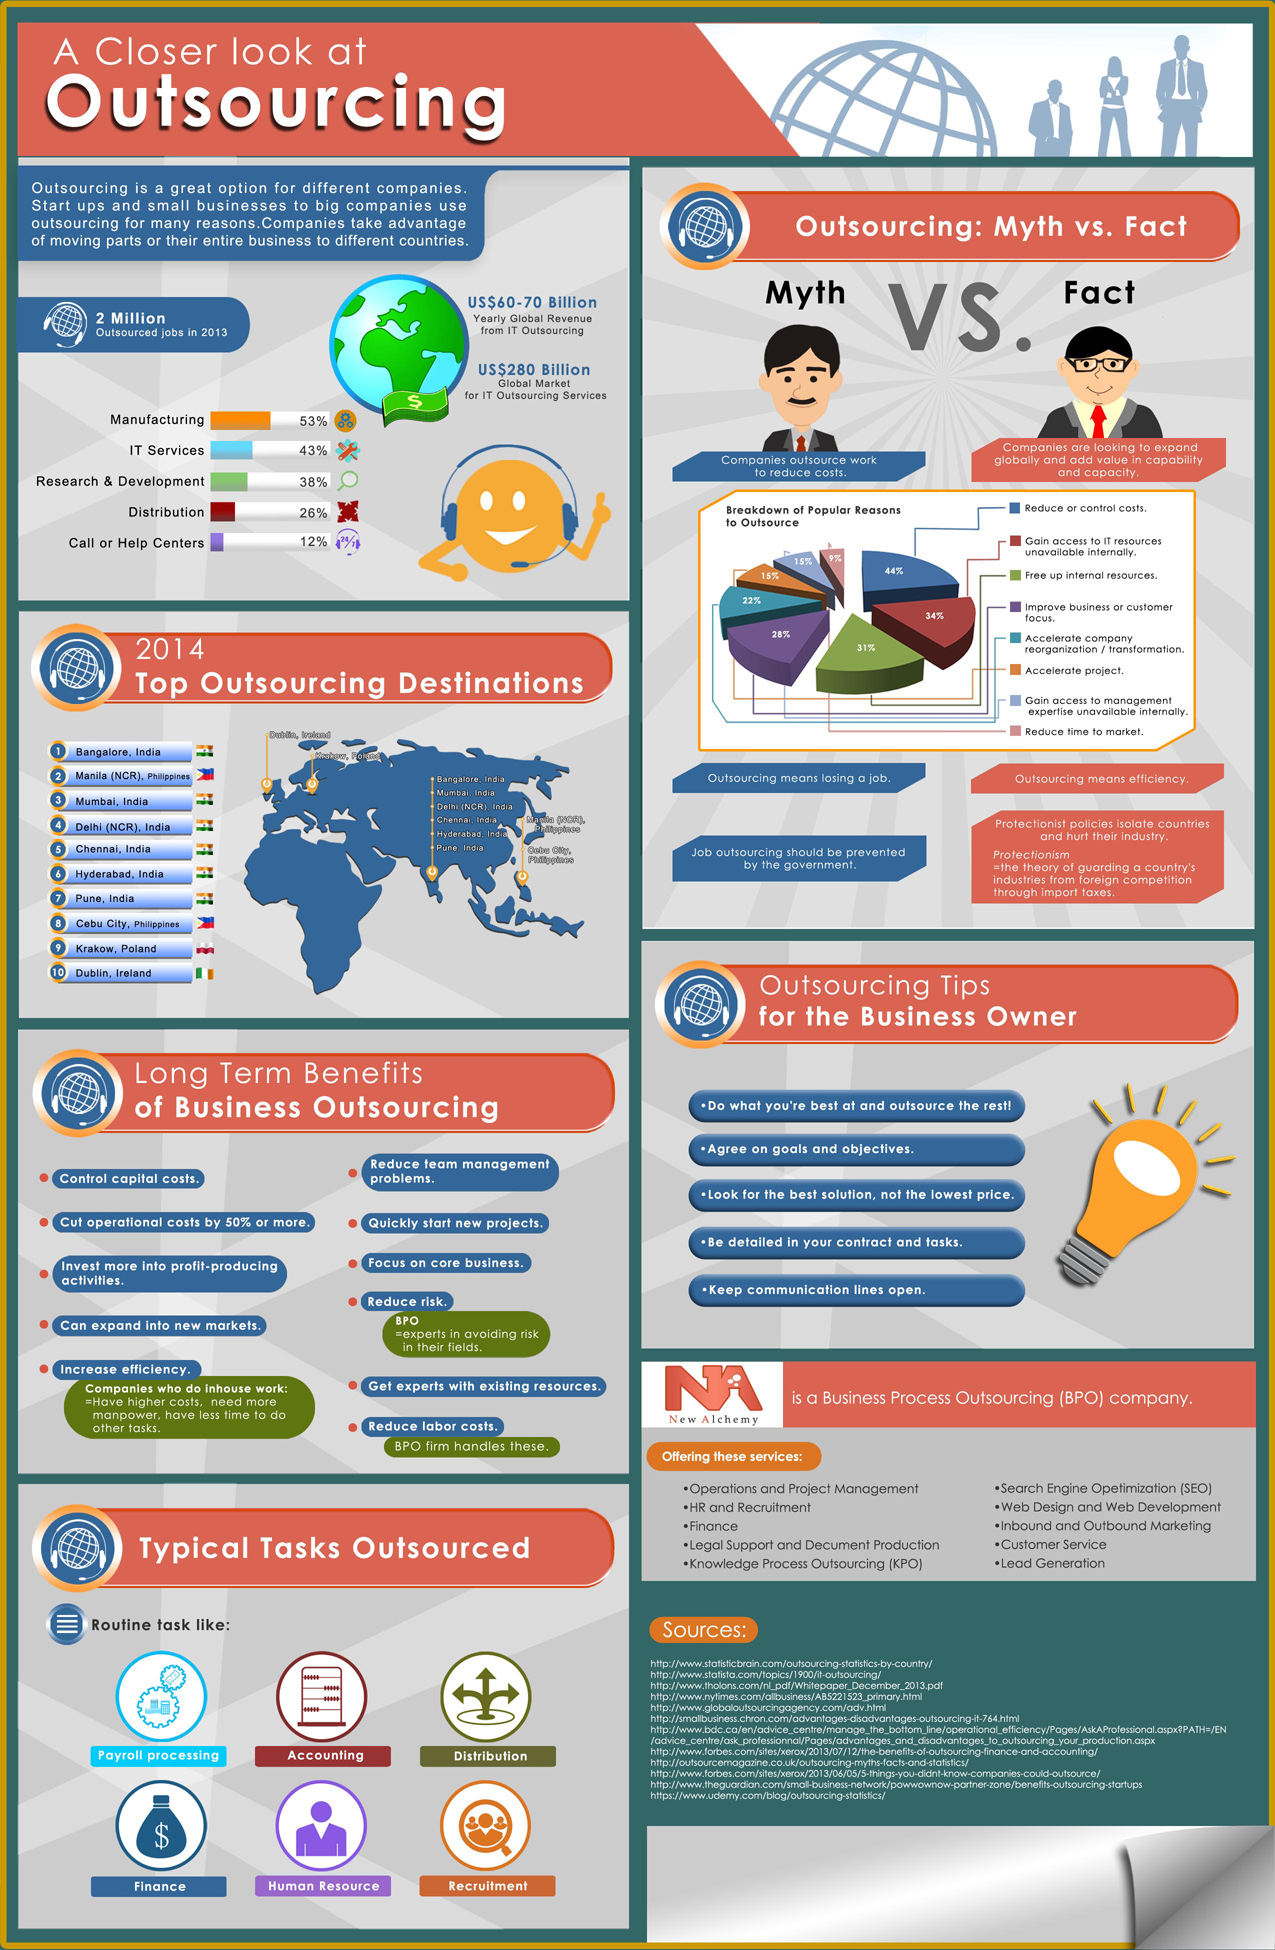 new-alchemy_a-closer-look-at-outsourcing-infographic-plaza-resized